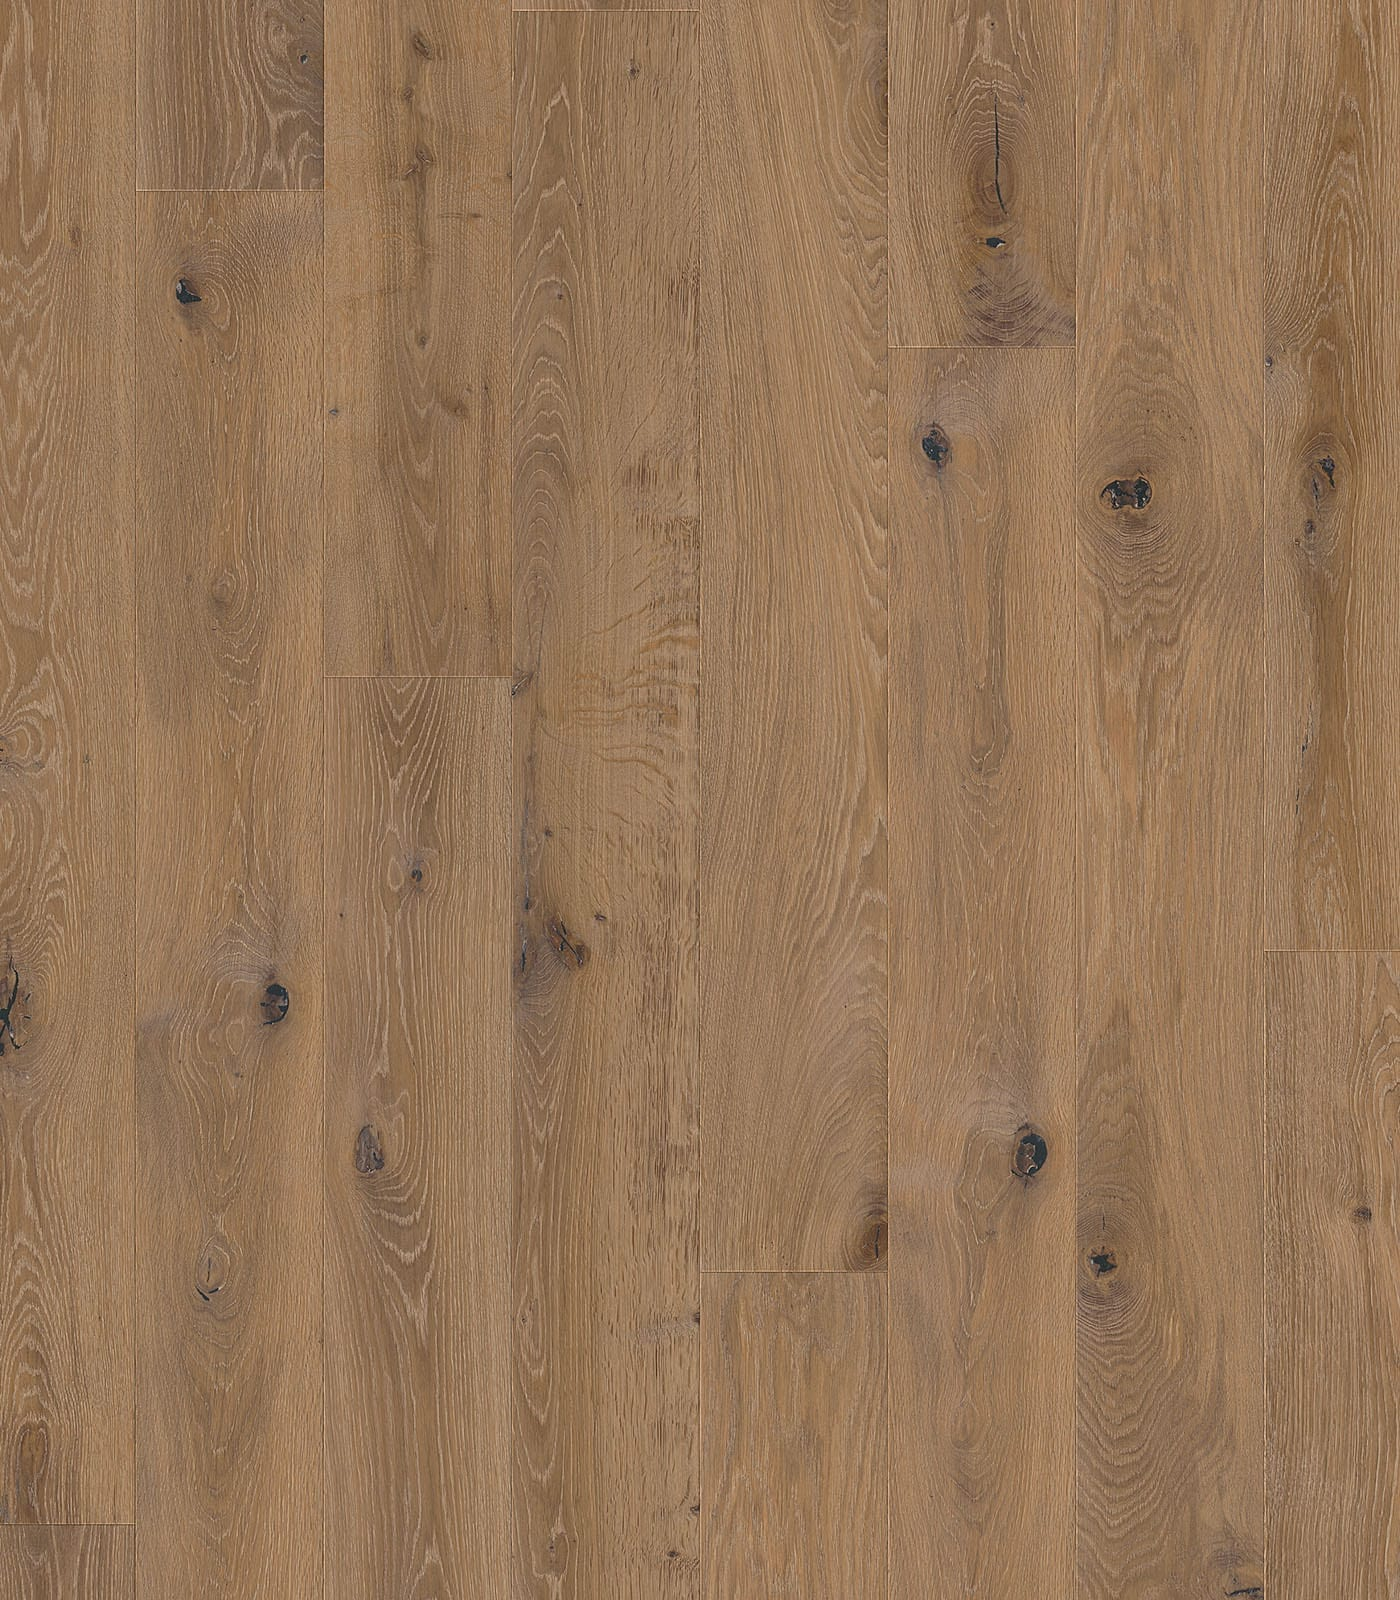 Minorca-Lifestyle Collection-European Oak Floors-flat